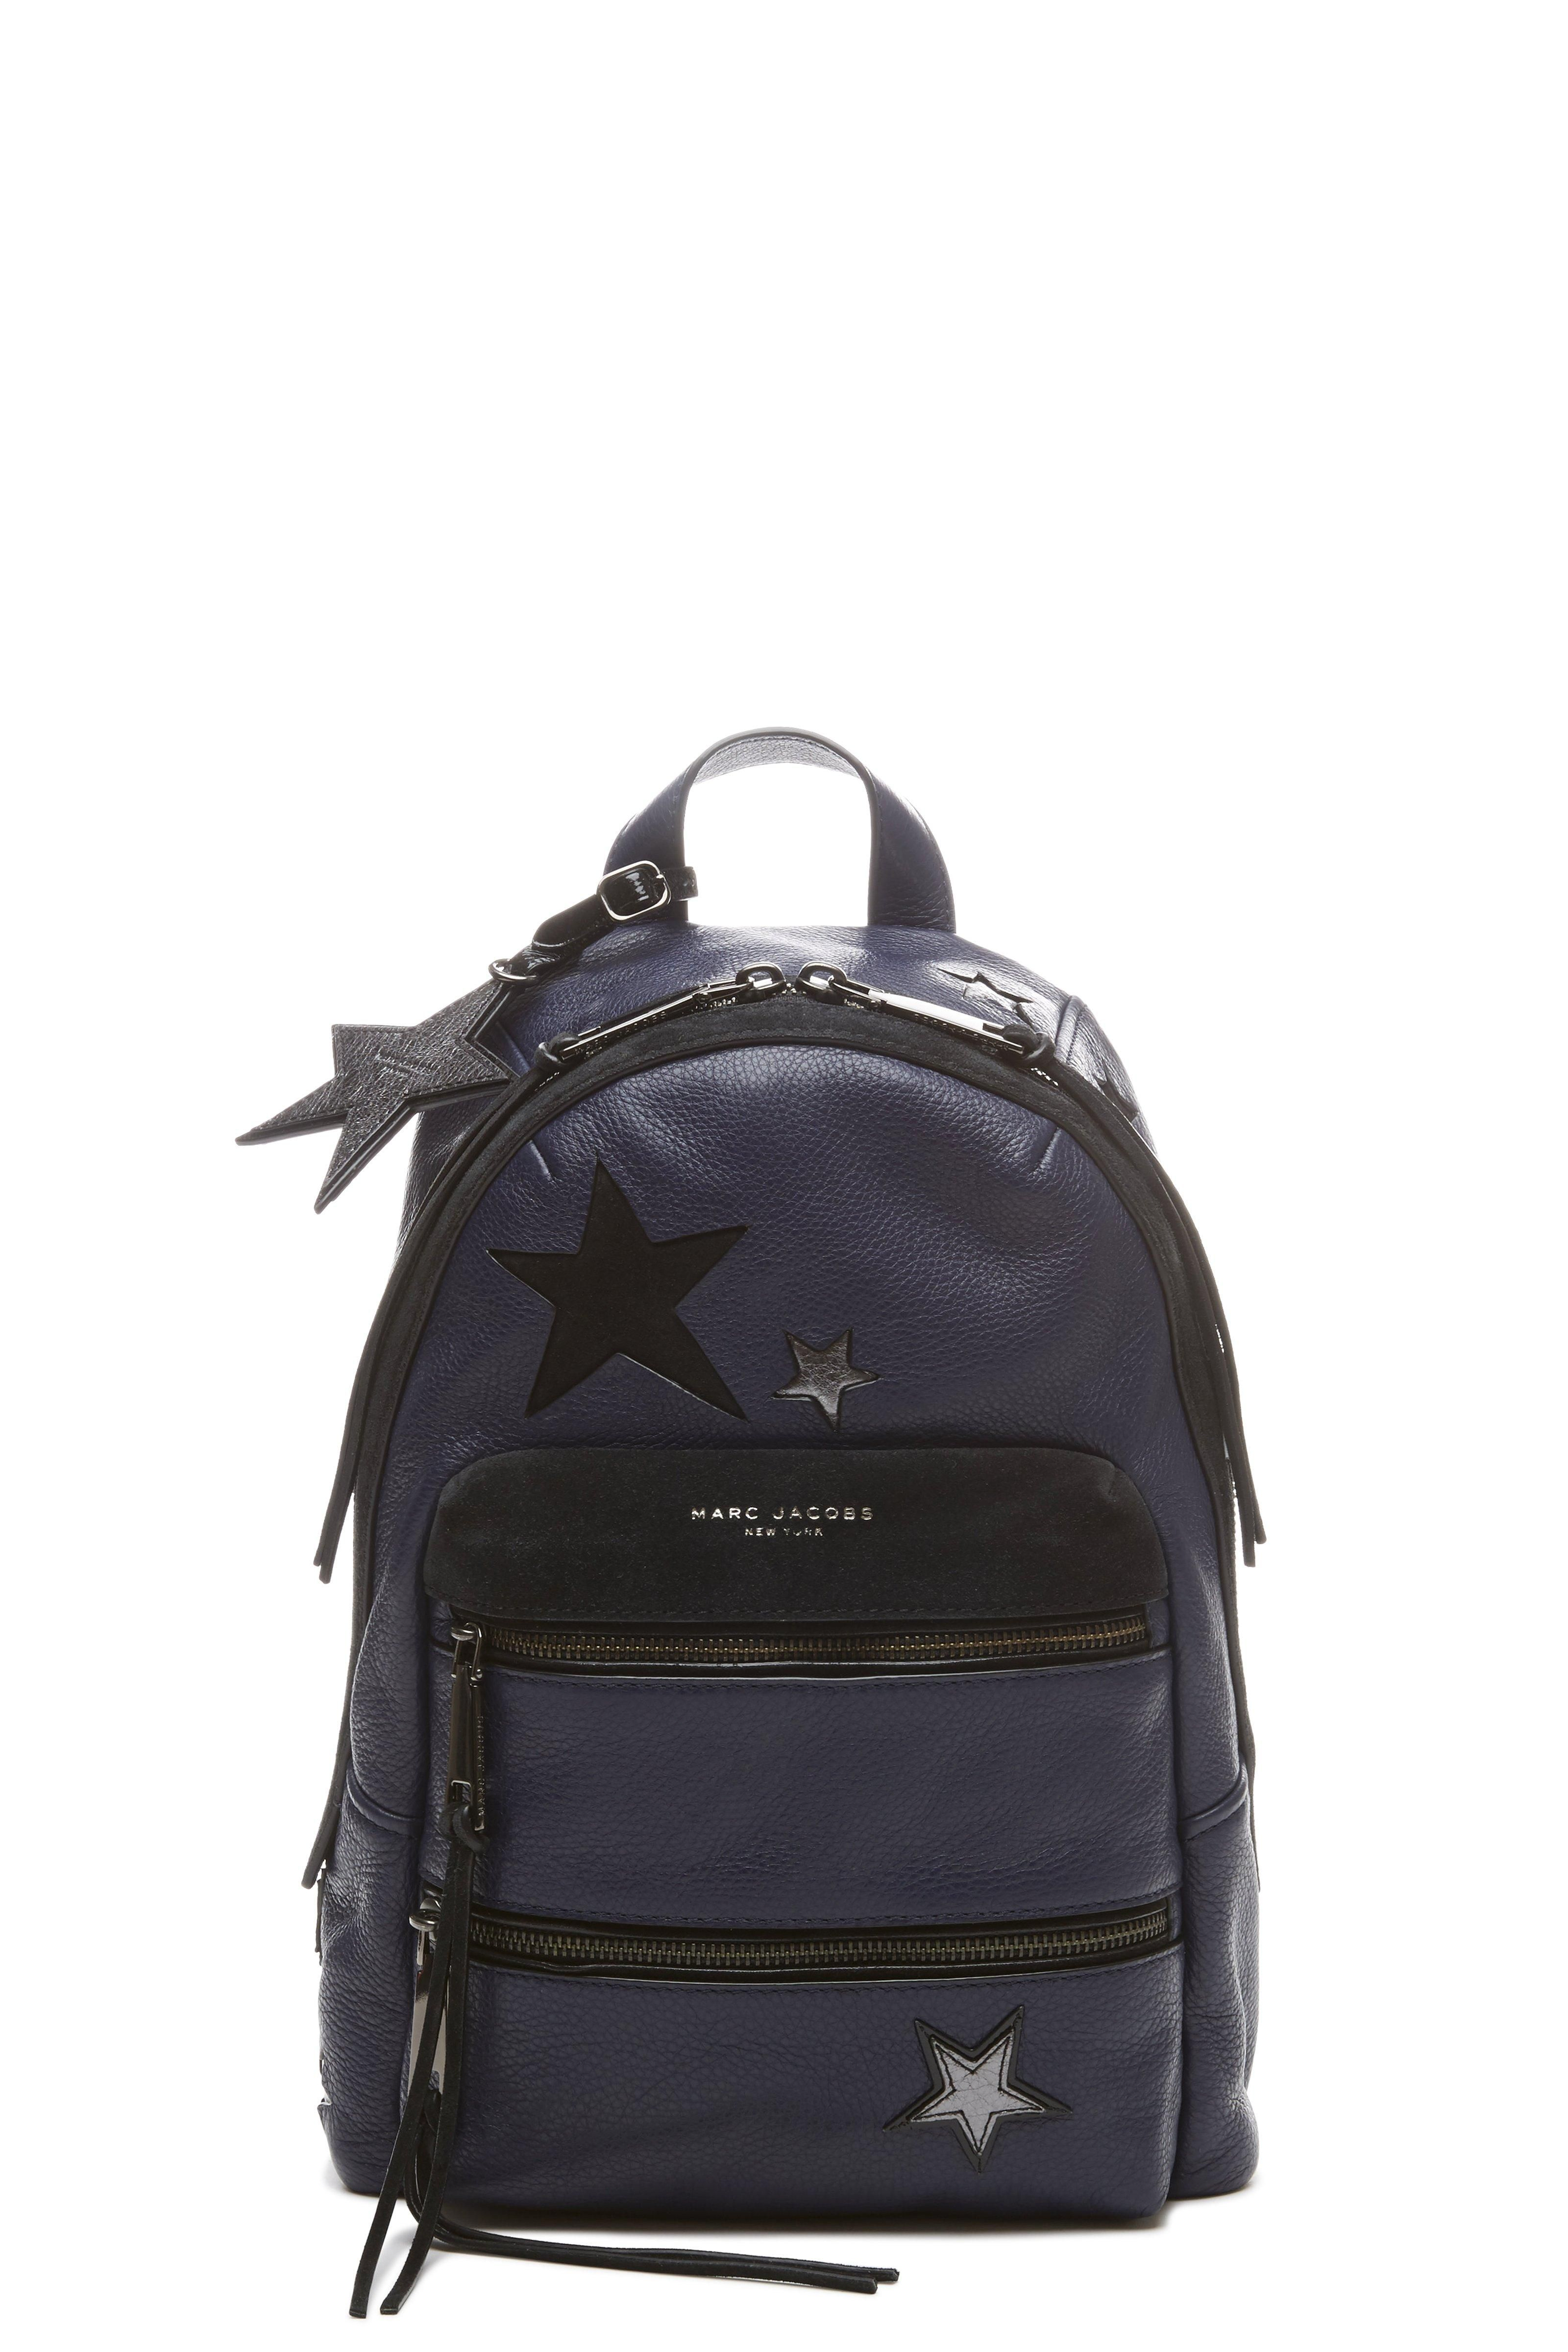 6d32e96708 MARC JACOBS Star Patchwork Leather Backpack.  marcjacobs  bags  leather   backpacks